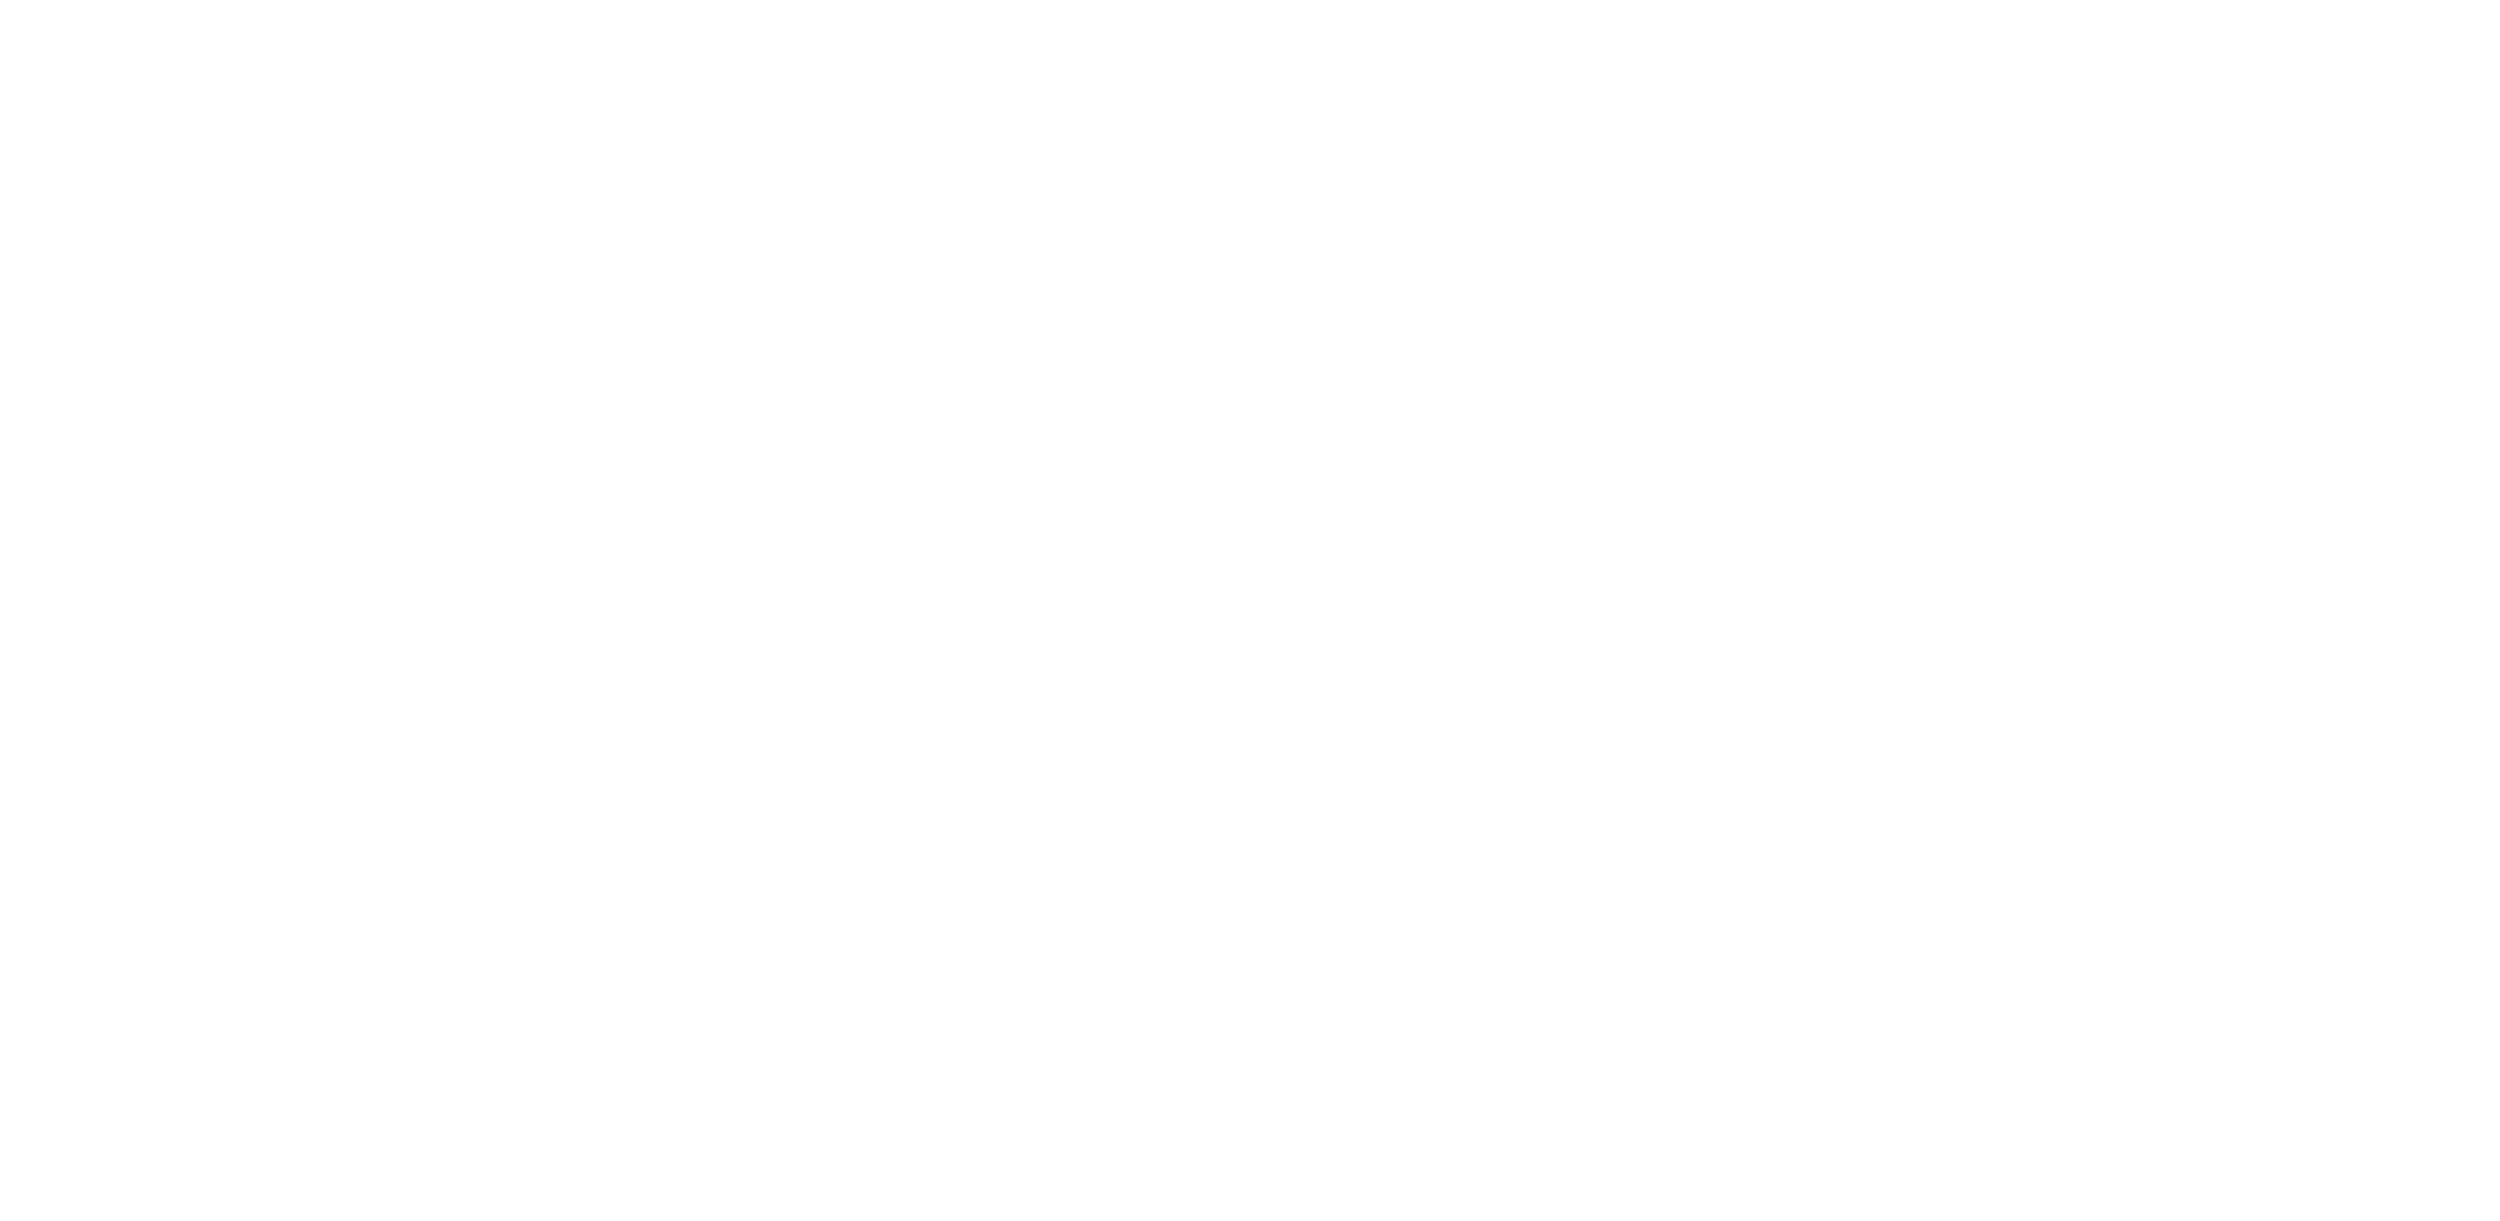 radiopublic-full-logo-red-on-transparent.png